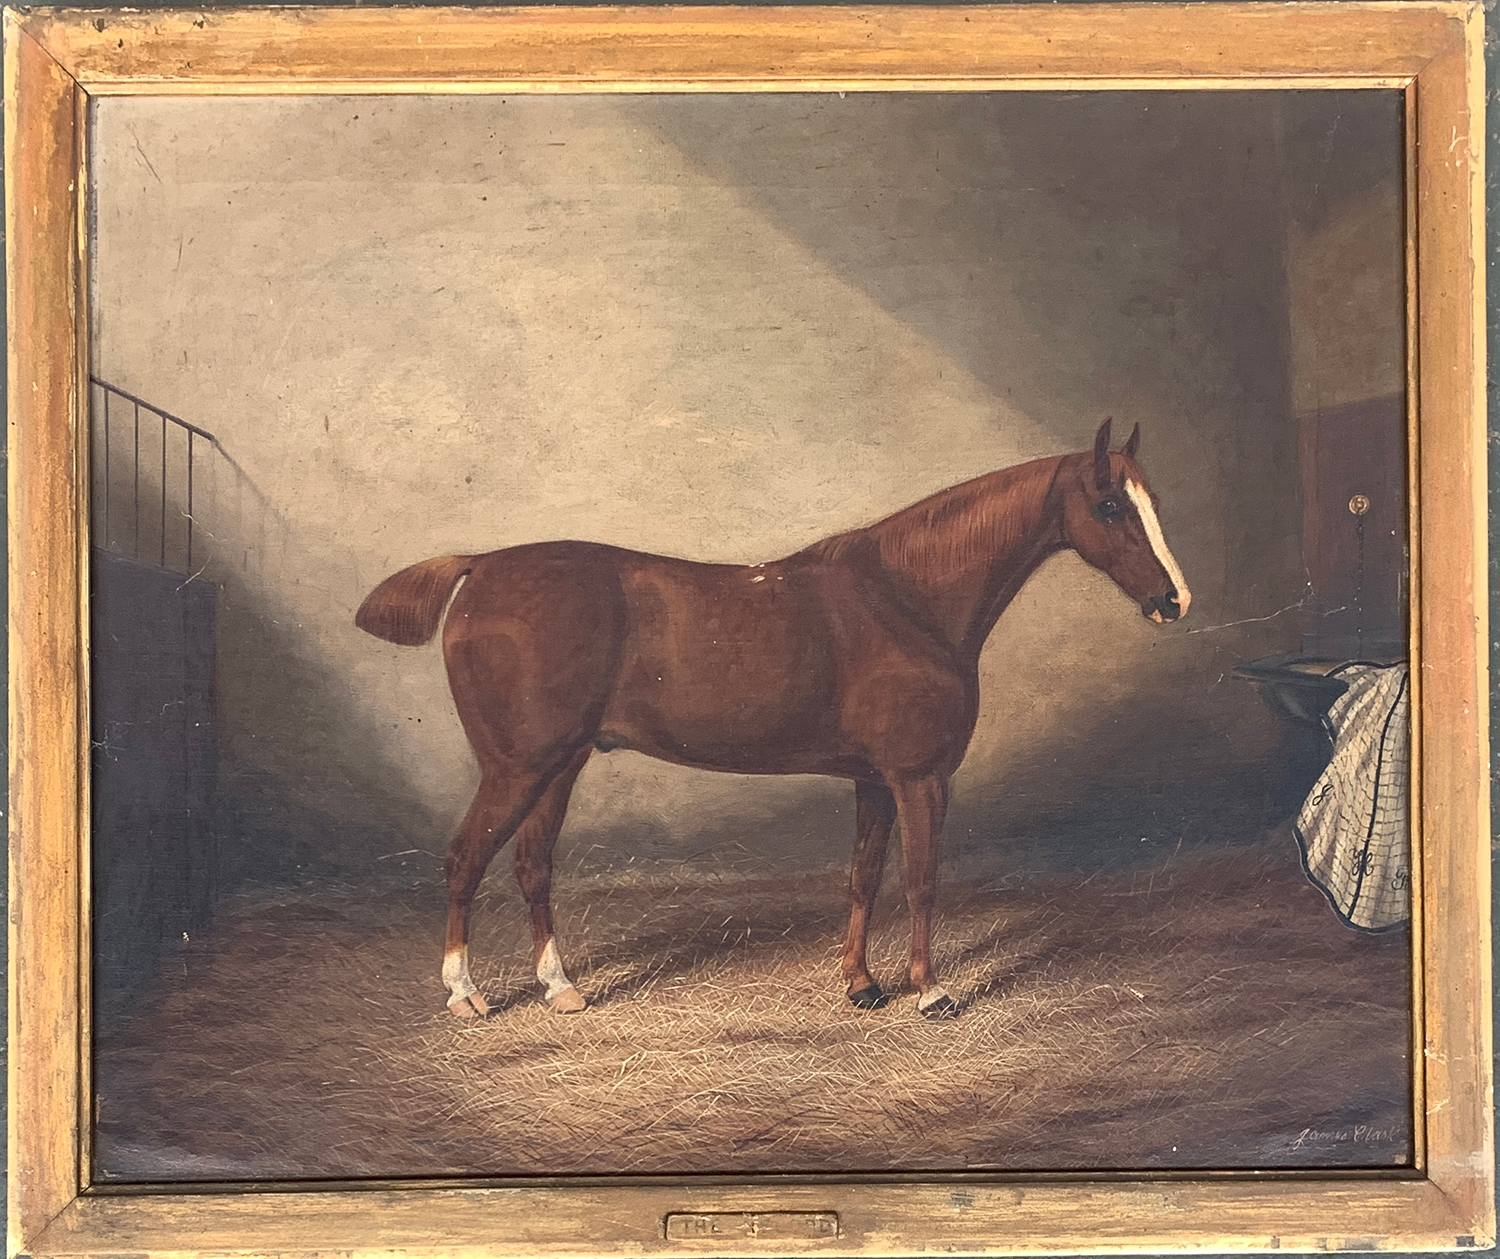 James Clark (British 1858-1943), A Liver Chestnut Hunter 'The Record' in a Stable with a Blanket,